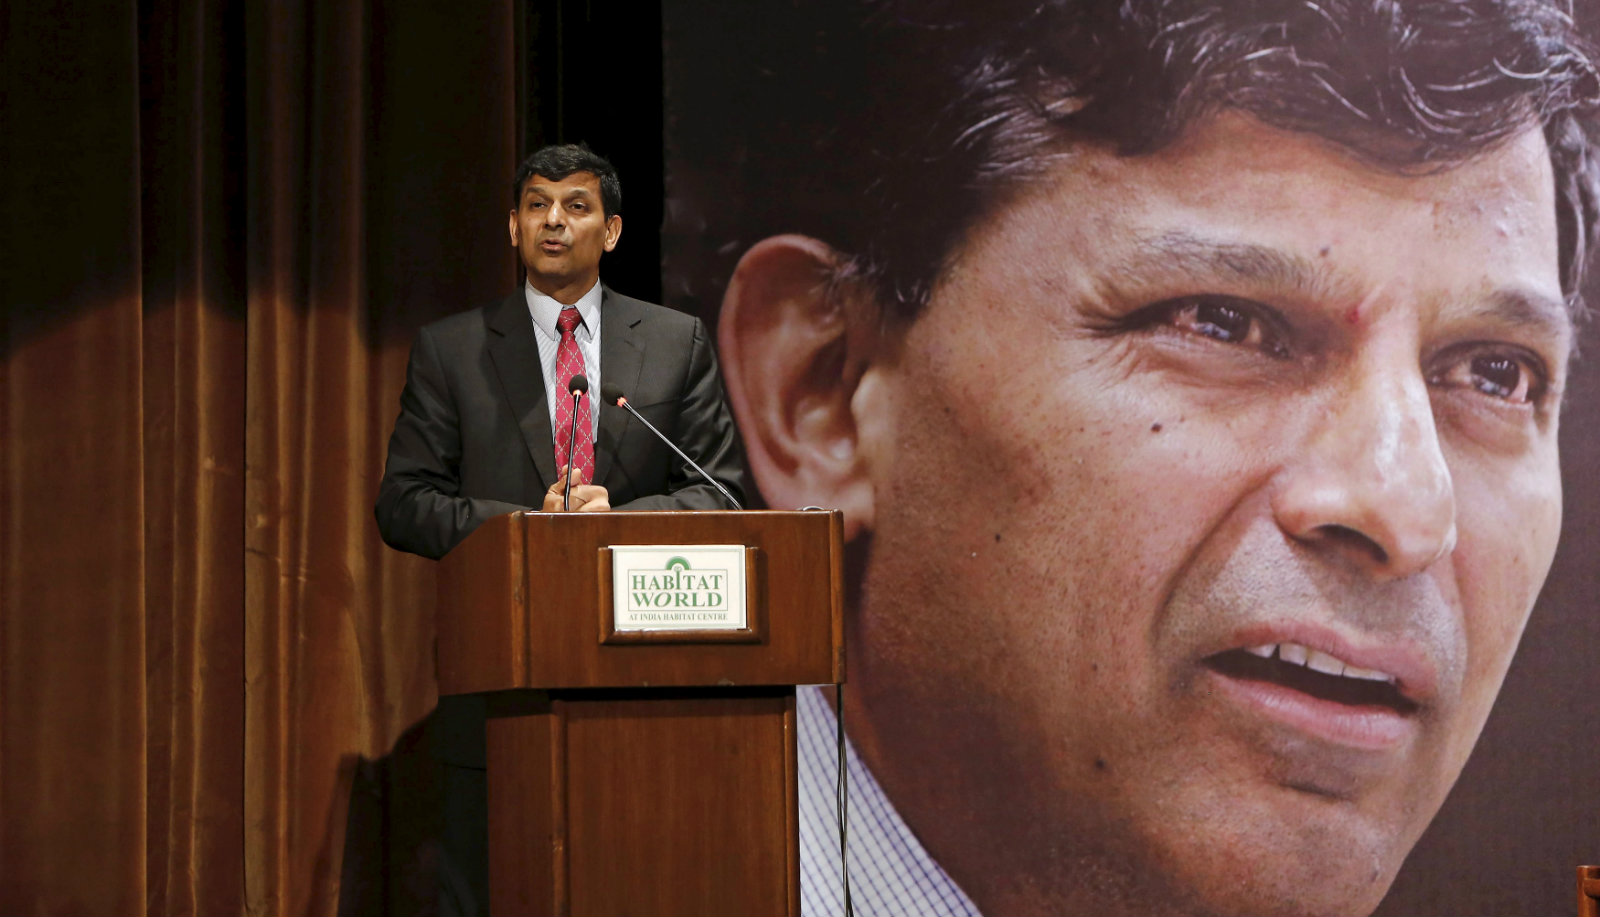 Reserve Bank of India (RBI) Governor Raghuram Rajan delivers a lecture at the India Habitat Centre in New Delhi, India, November 6, 2015. Rajan said on Friday bringing down inflation would help stabilise the Indian rupee, while adding he welcomed government efforts to boost economic growth through structural reforms.